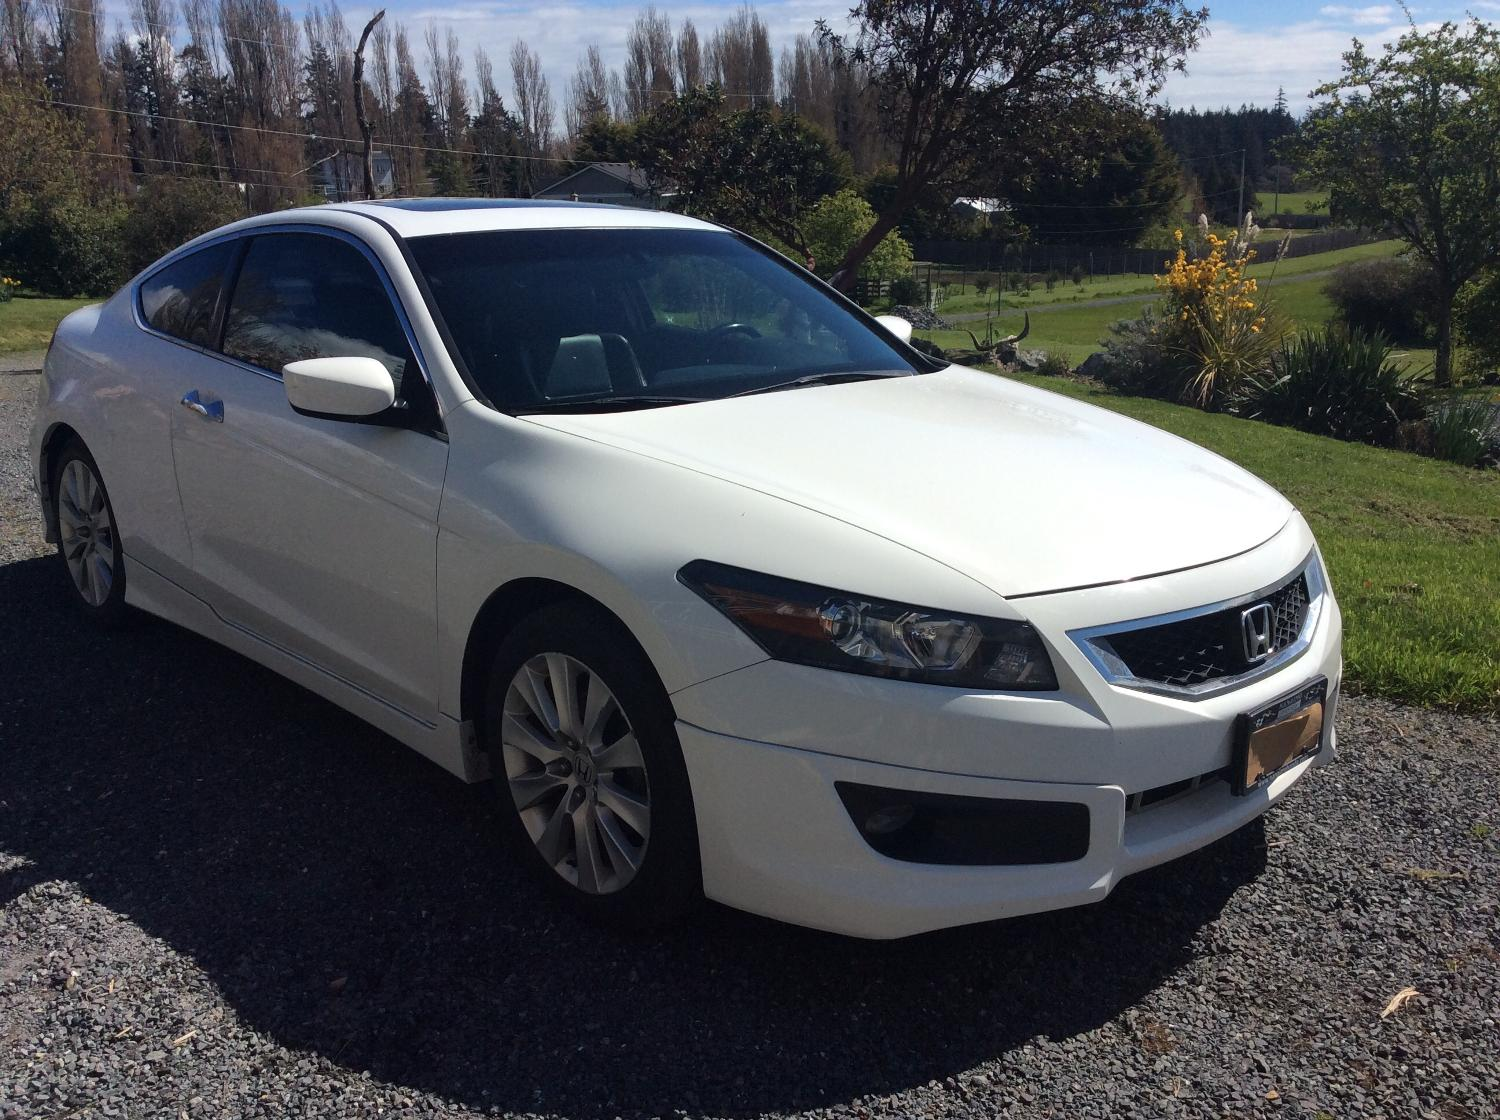 find more 2008 honda accord coupe v6 6 speed manual for sale at up to 90 off. Black Bedroom Furniture Sets. Home Design Ideas